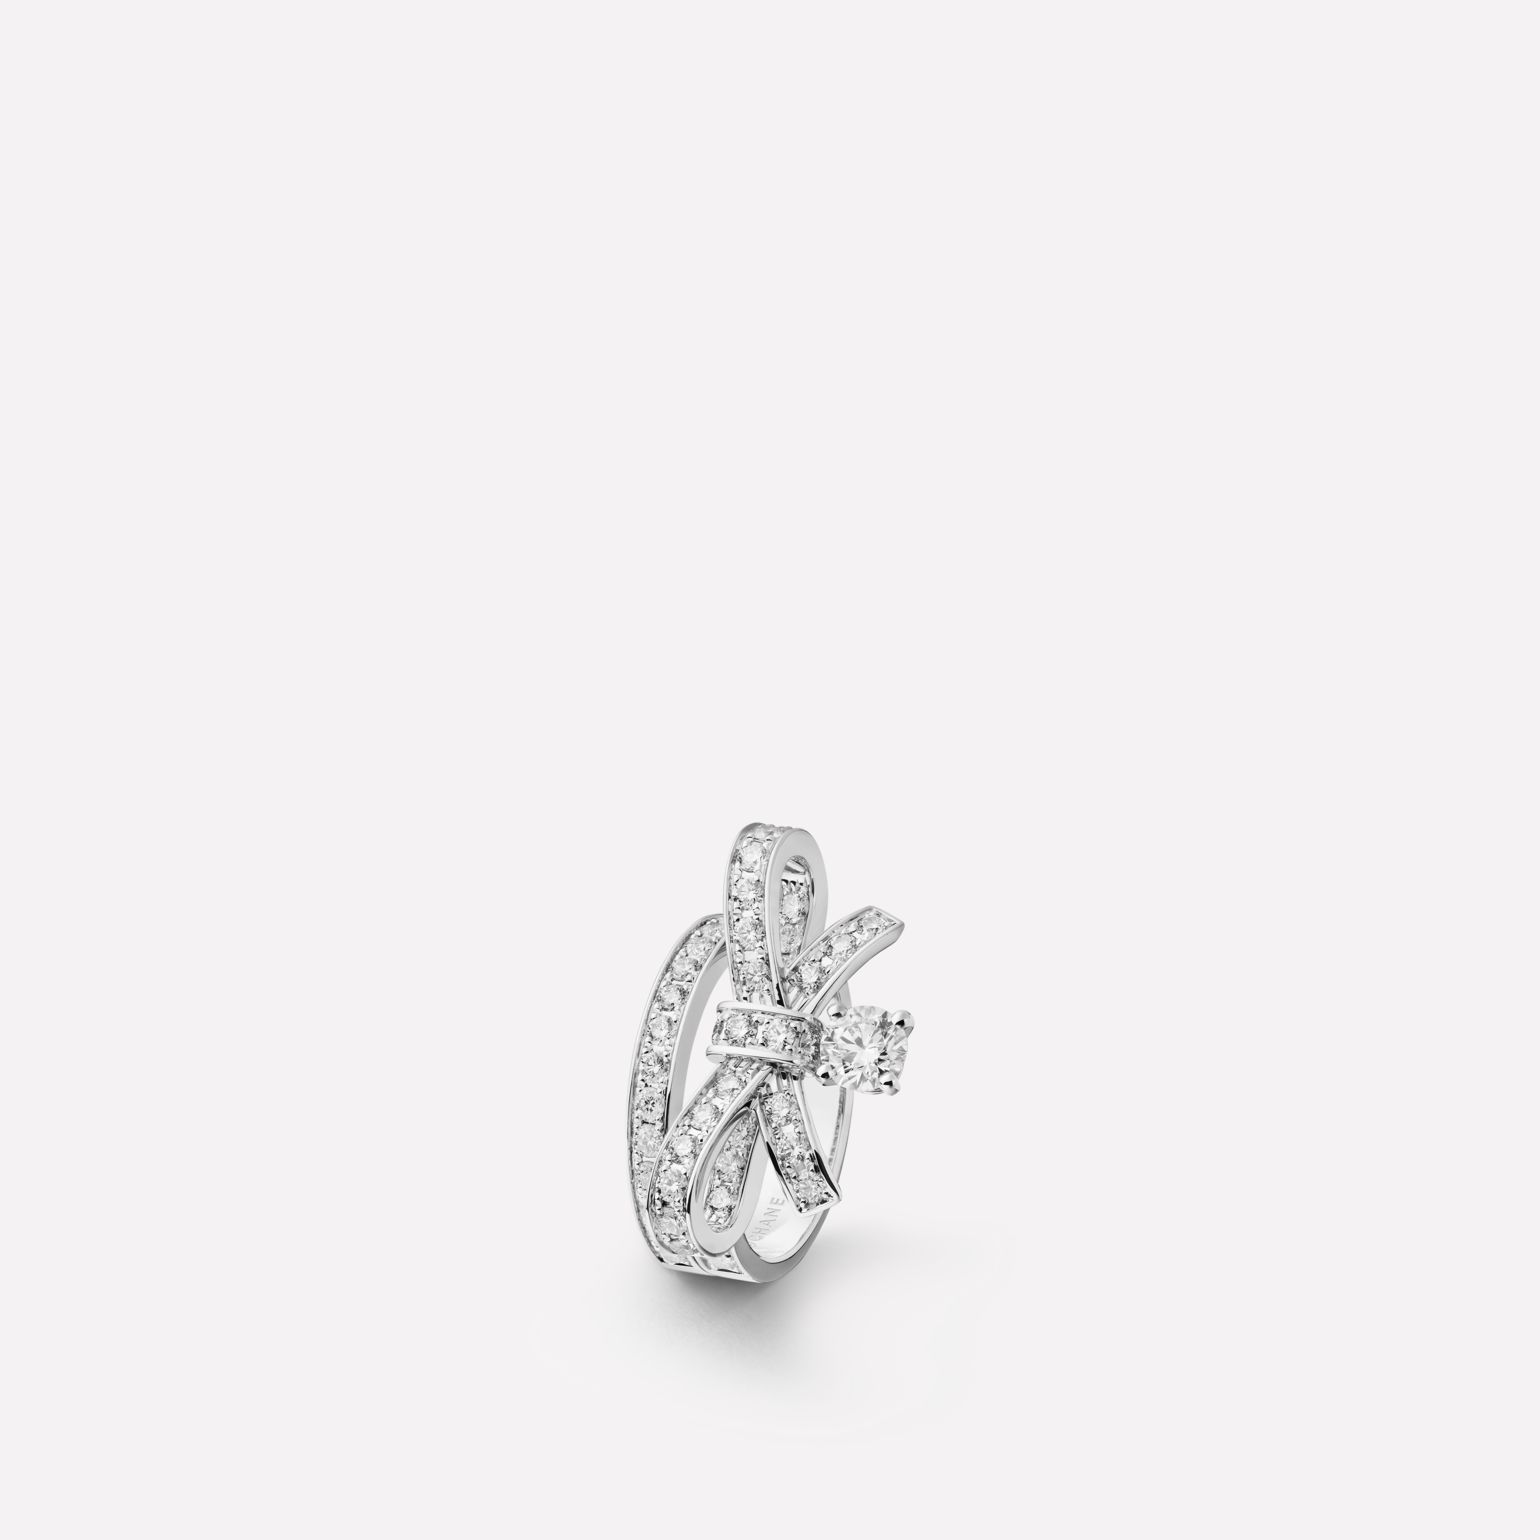 Bague Ruban Motif ruban en or blanc 18 carats, diamants et diamant de centre